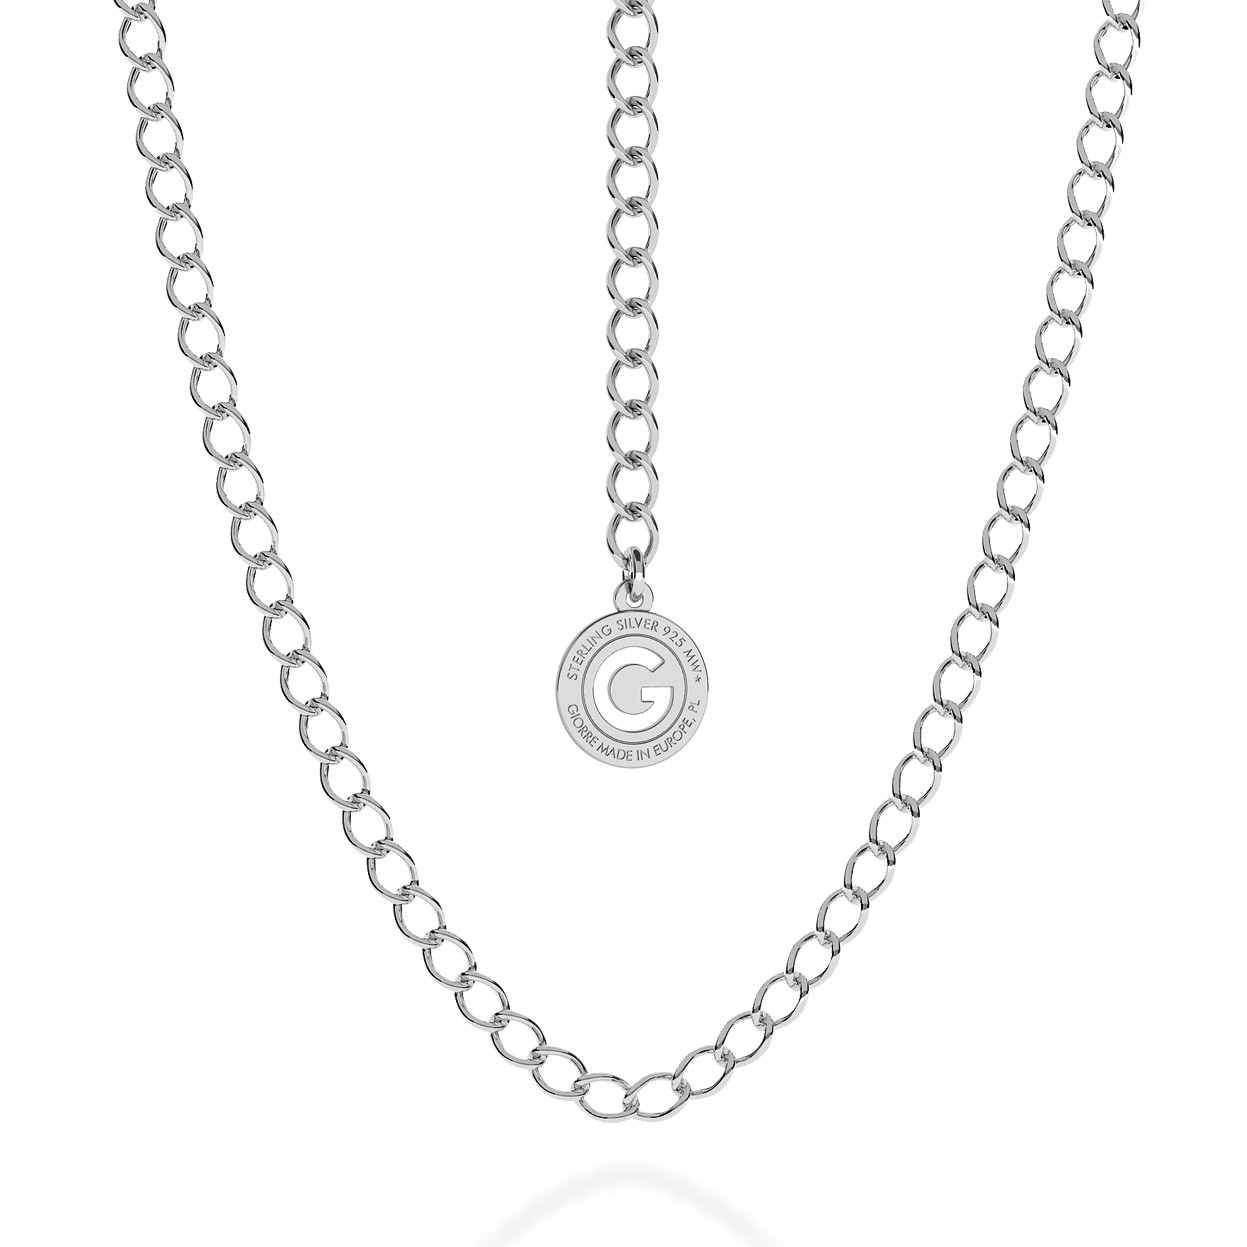 SILVER NECKLACE ROMBO 55 CM, RHODIUM PLATED (BLACK RHODIUM)